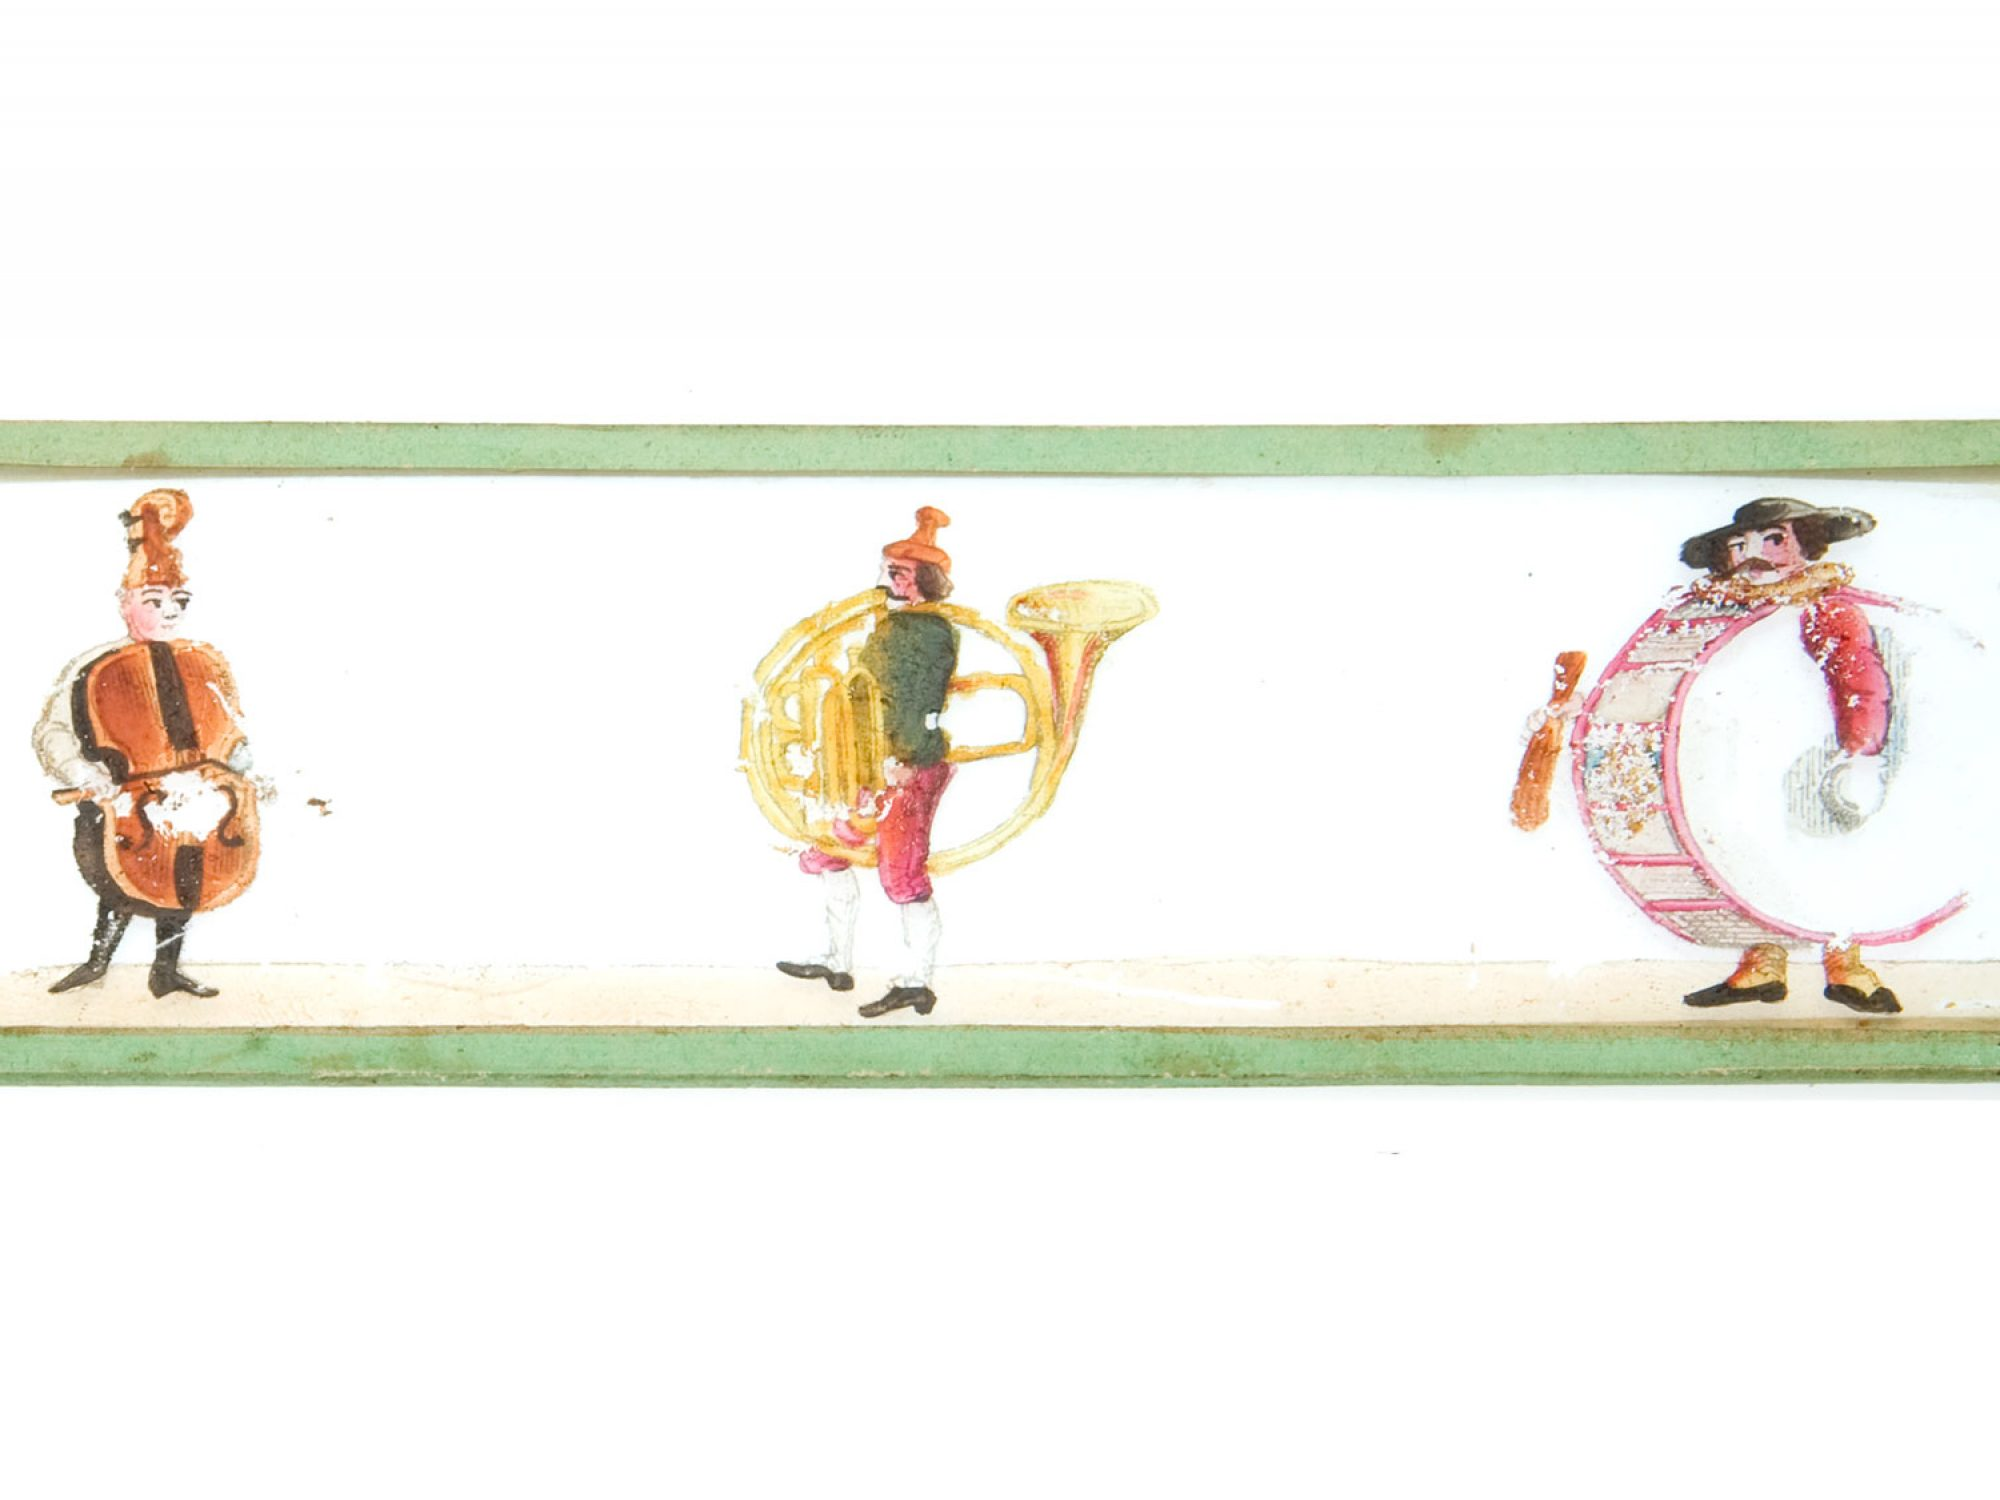 A glass slide edges in green wood. On the glass slide are three figures painted, all wearing life sized musical instrument costumes like a drum and a cello and a horn.